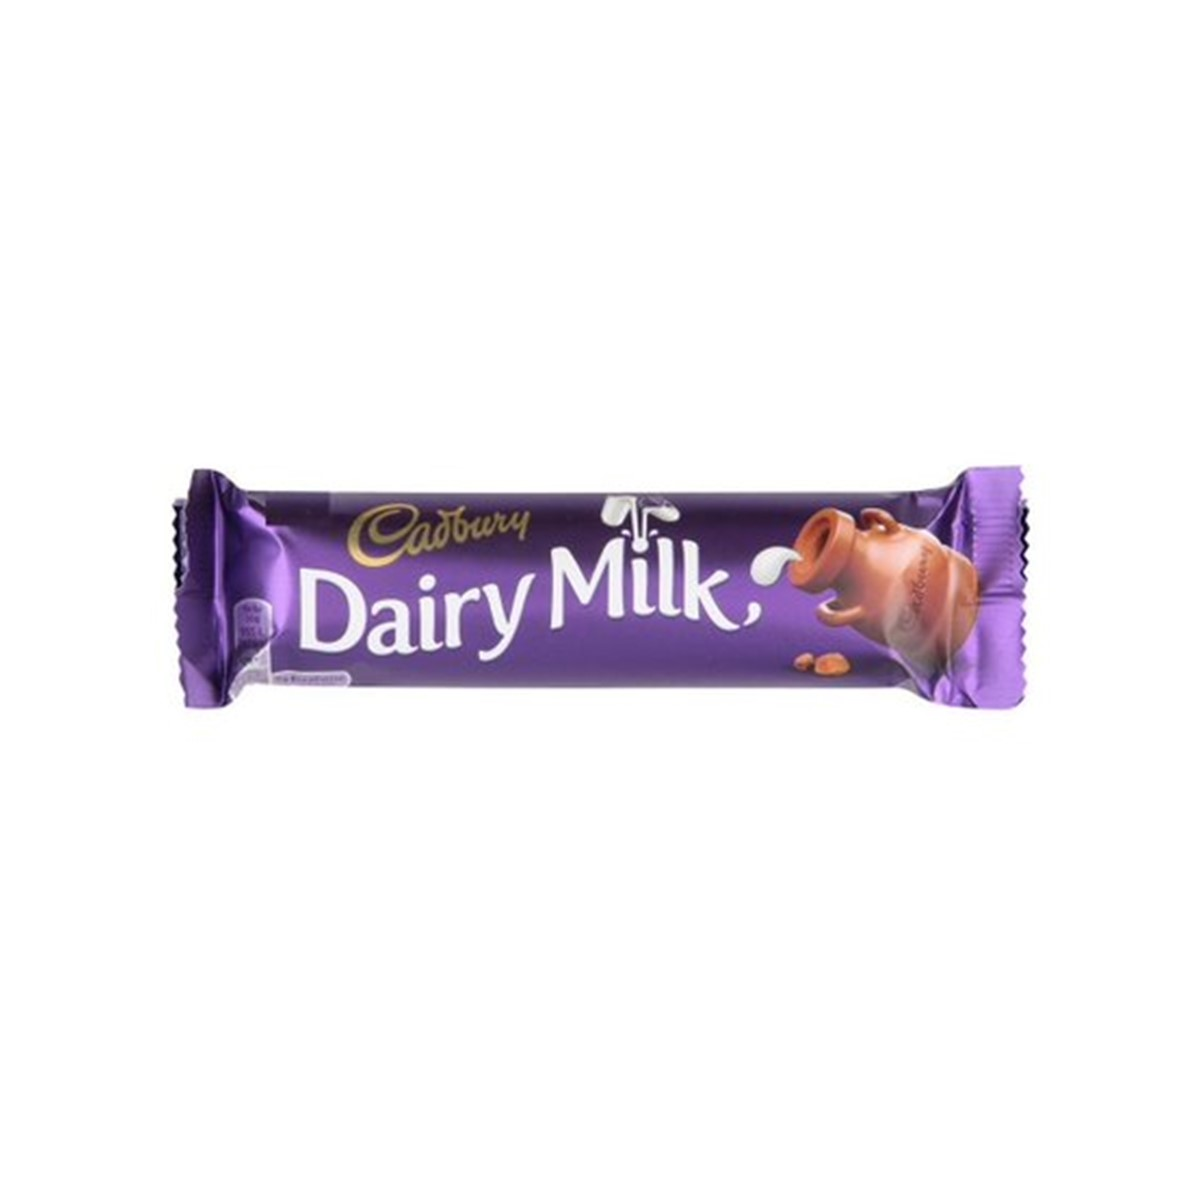 Cadbury Dairy Milk - 48x45g bars